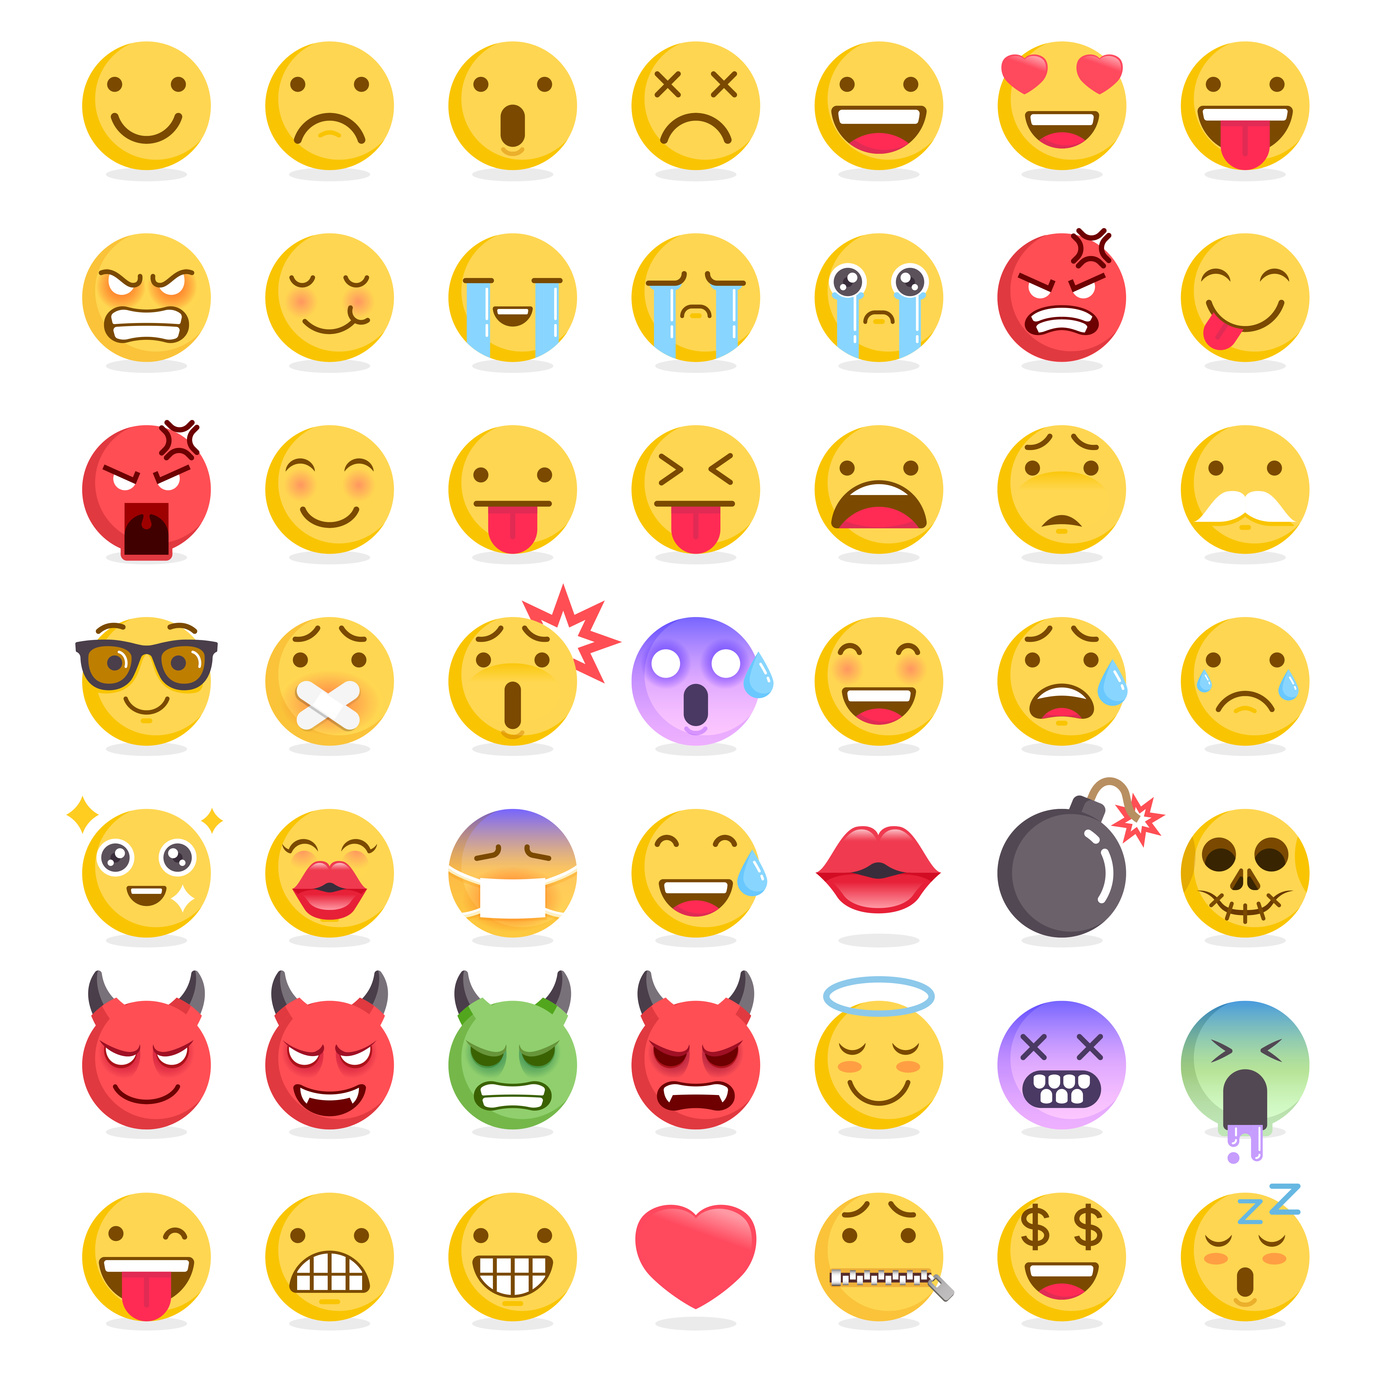 Using Emojis in Marketing Posts